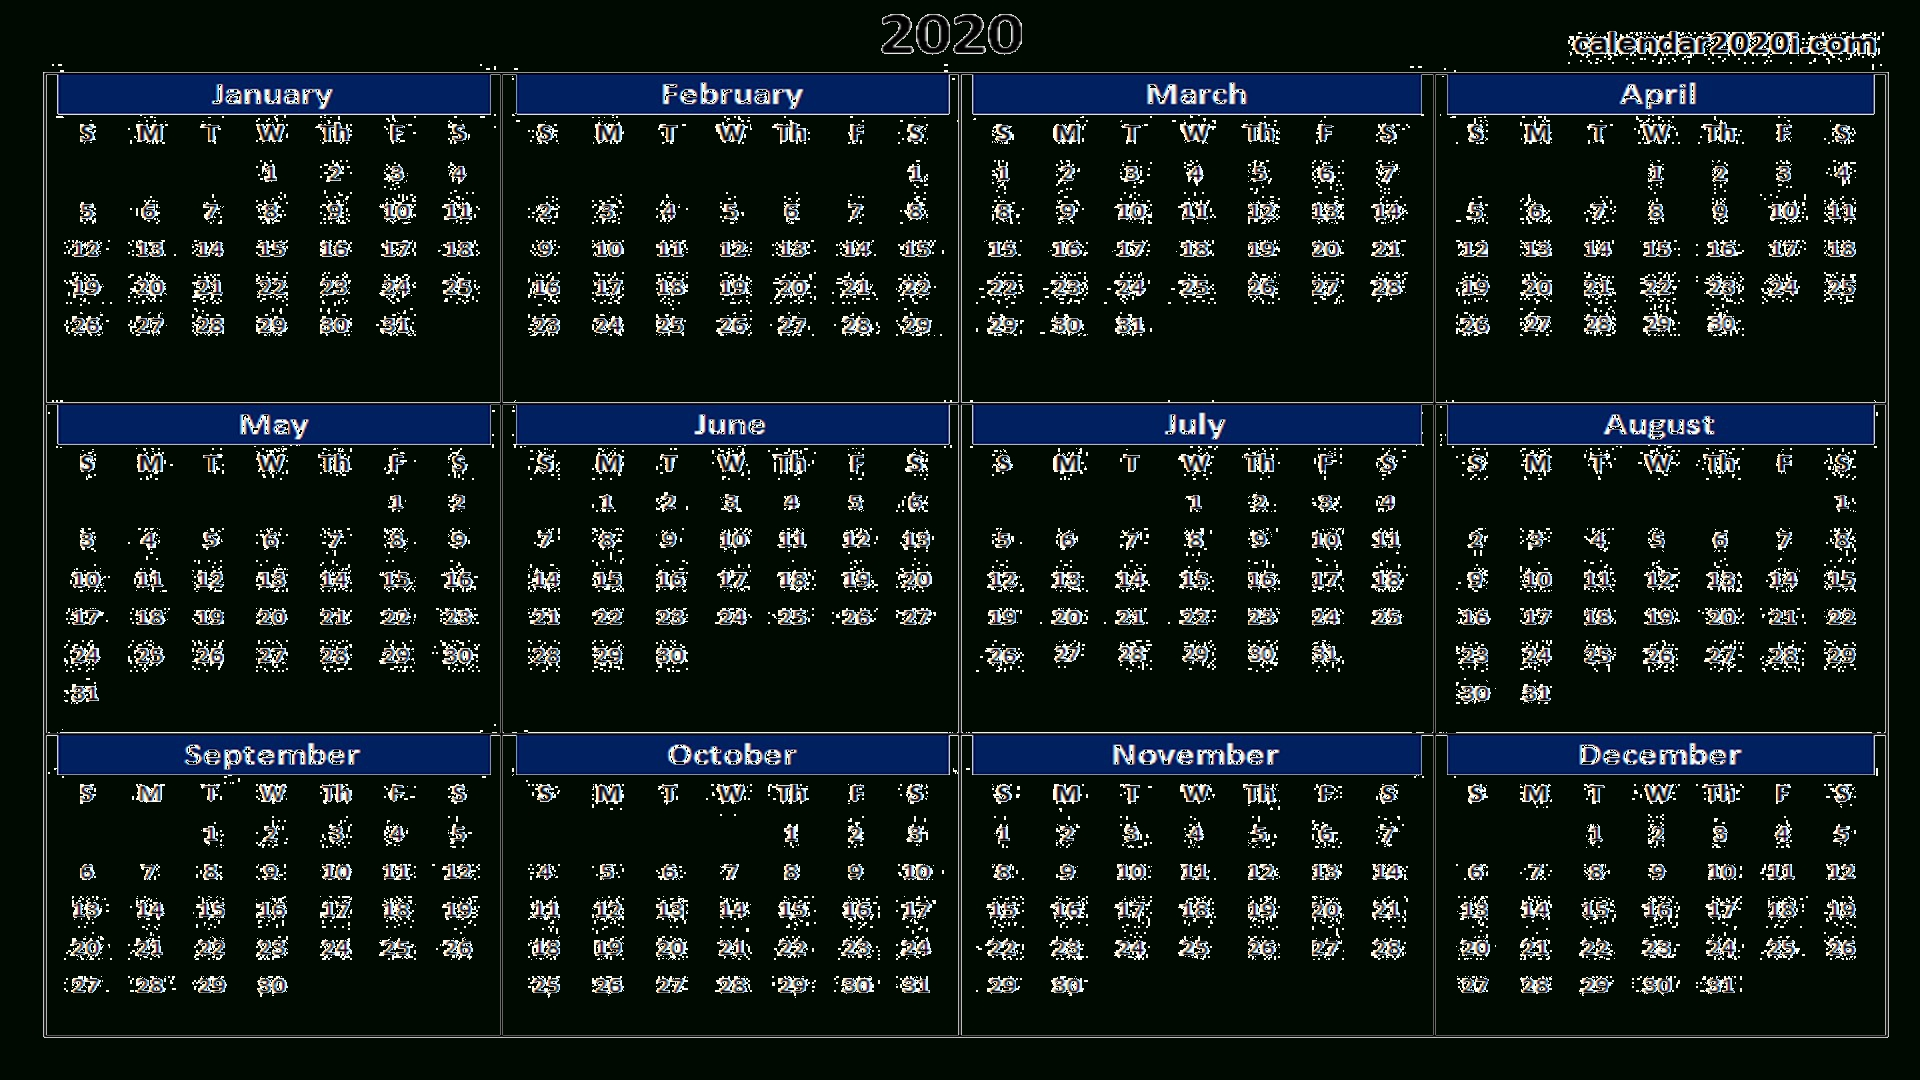 2020 Calendar Png Transparent Images | Png All with Calender For 2020 Week Wise In Hindi